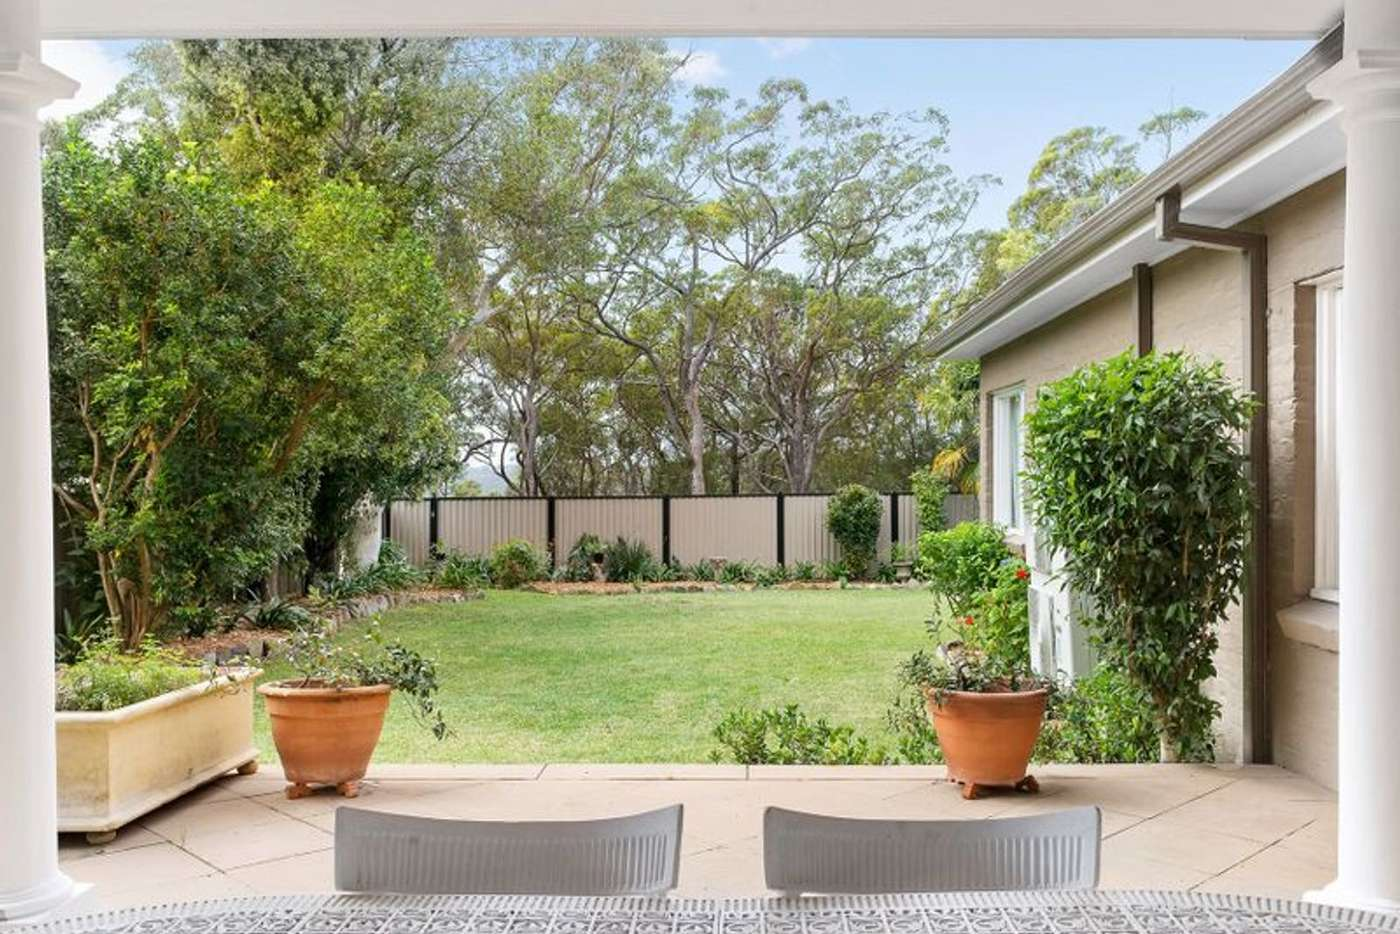 Fifth view of Homely house listing, 8 Paul Avenue, St Ives NSW 2075